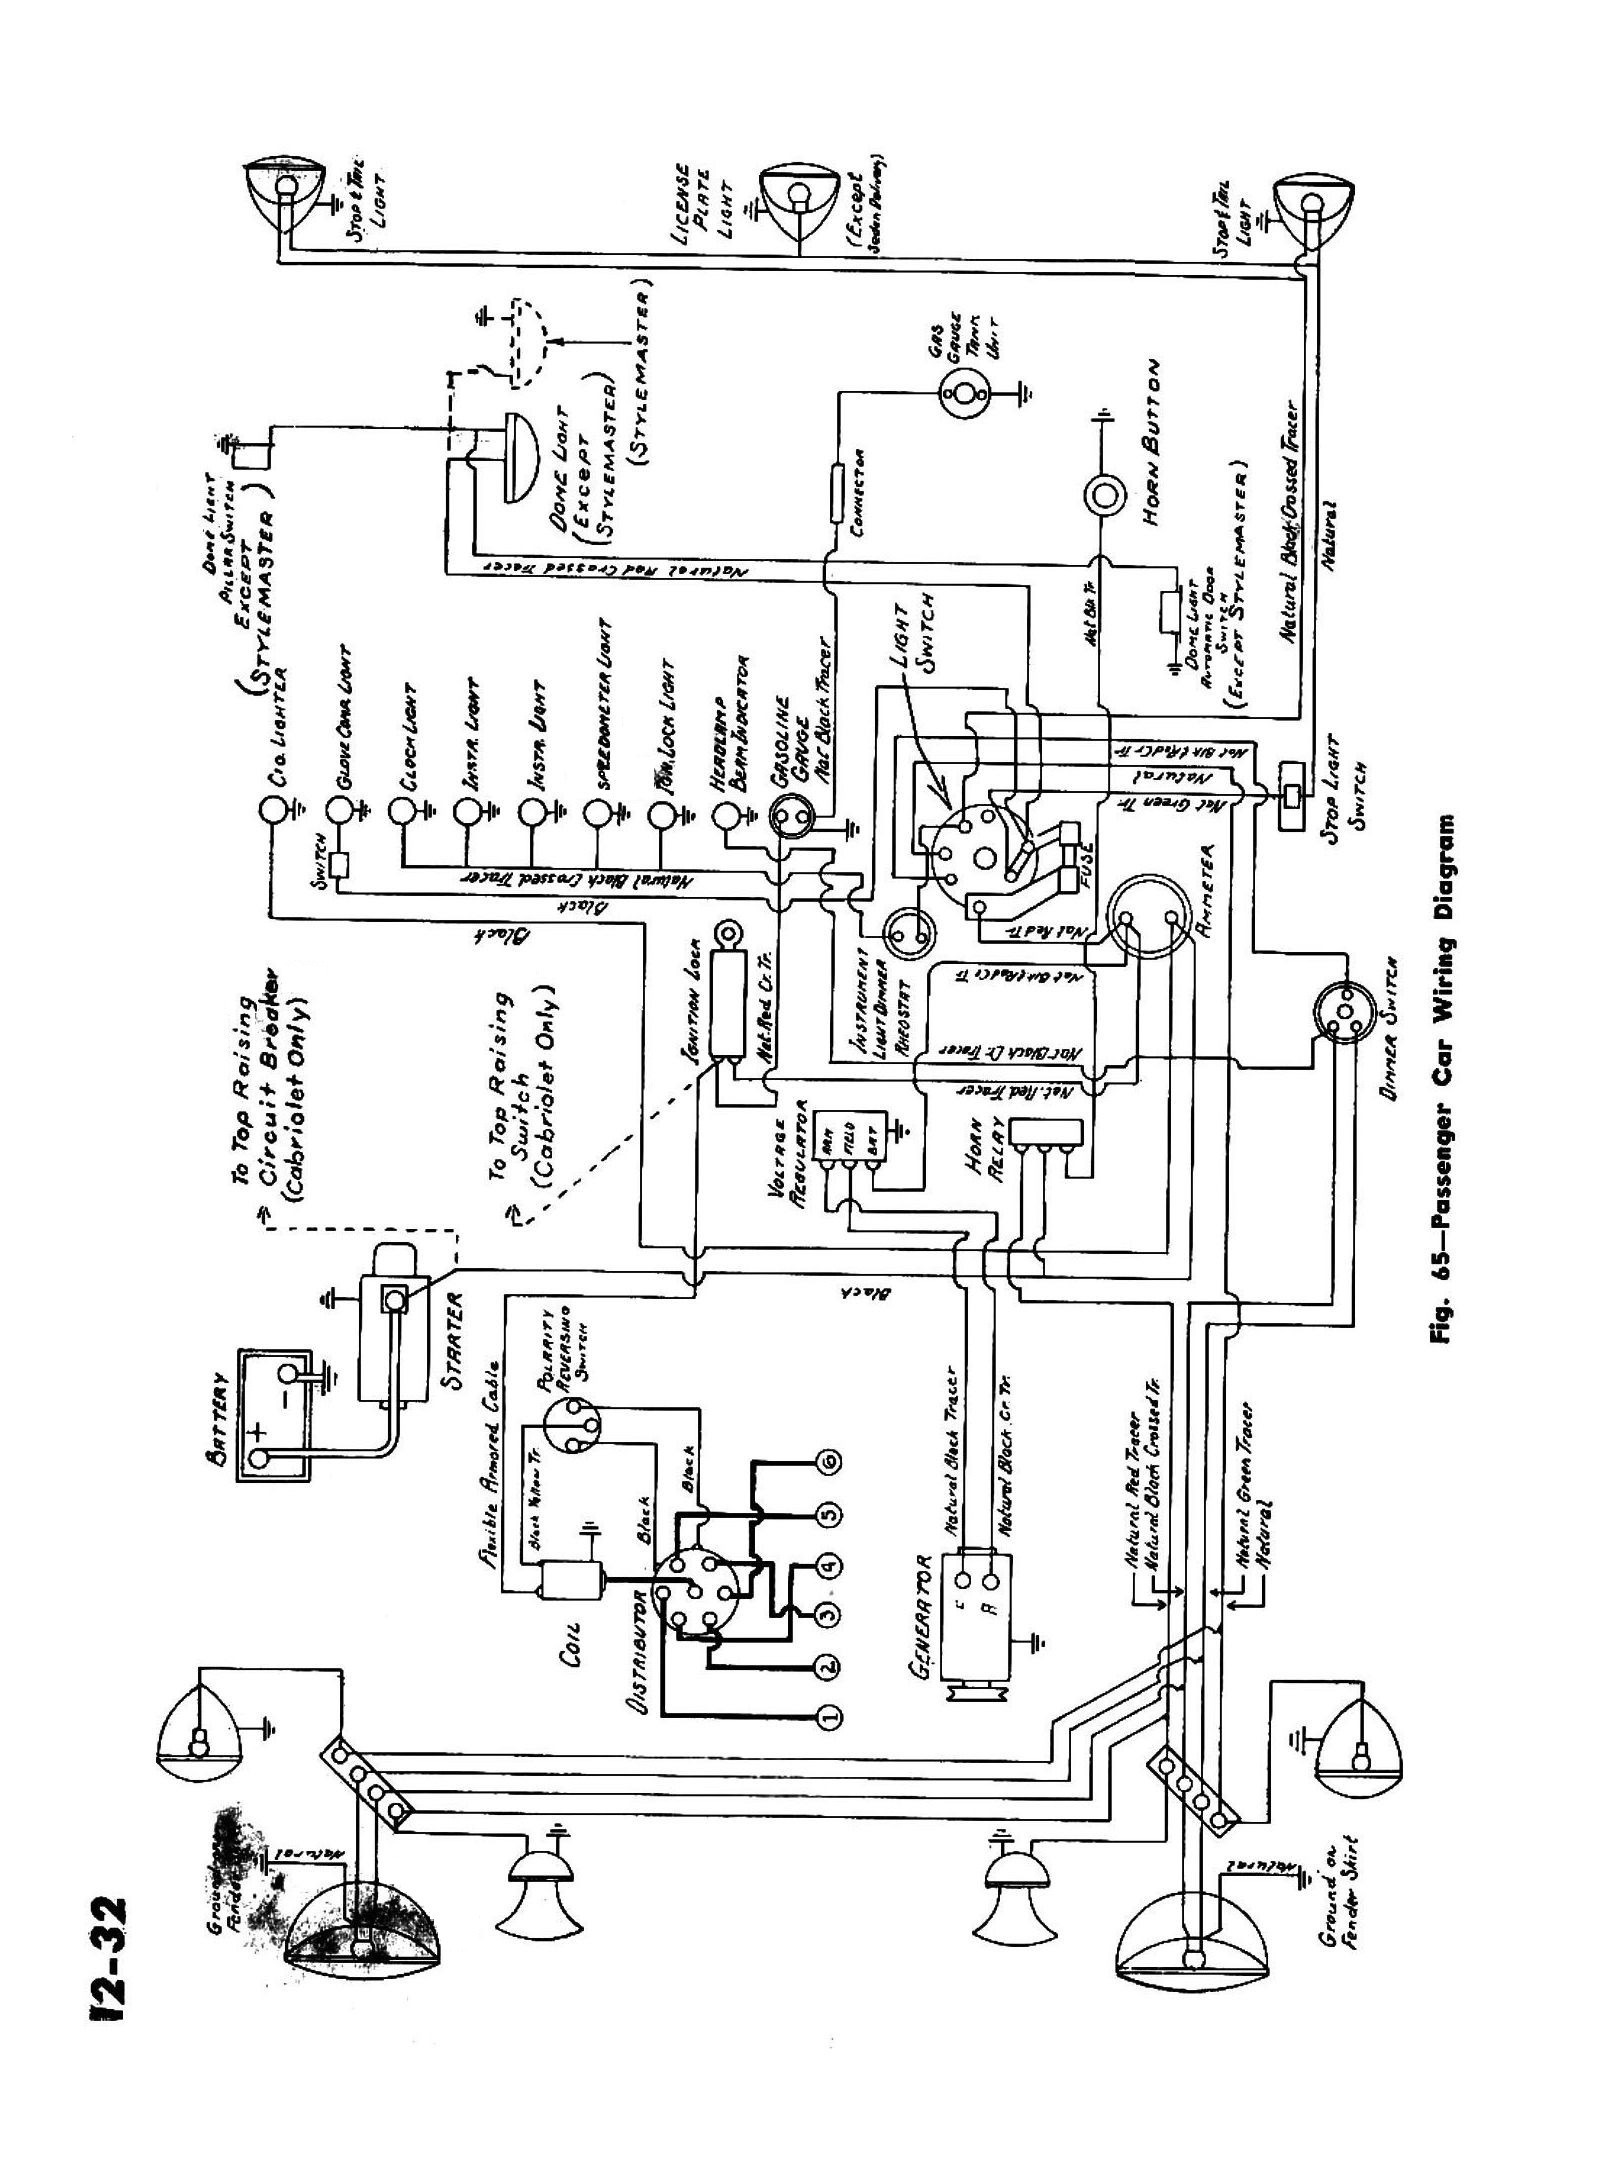 hight resolution of 1947 1947 car wiring 1947 passenger car wiring